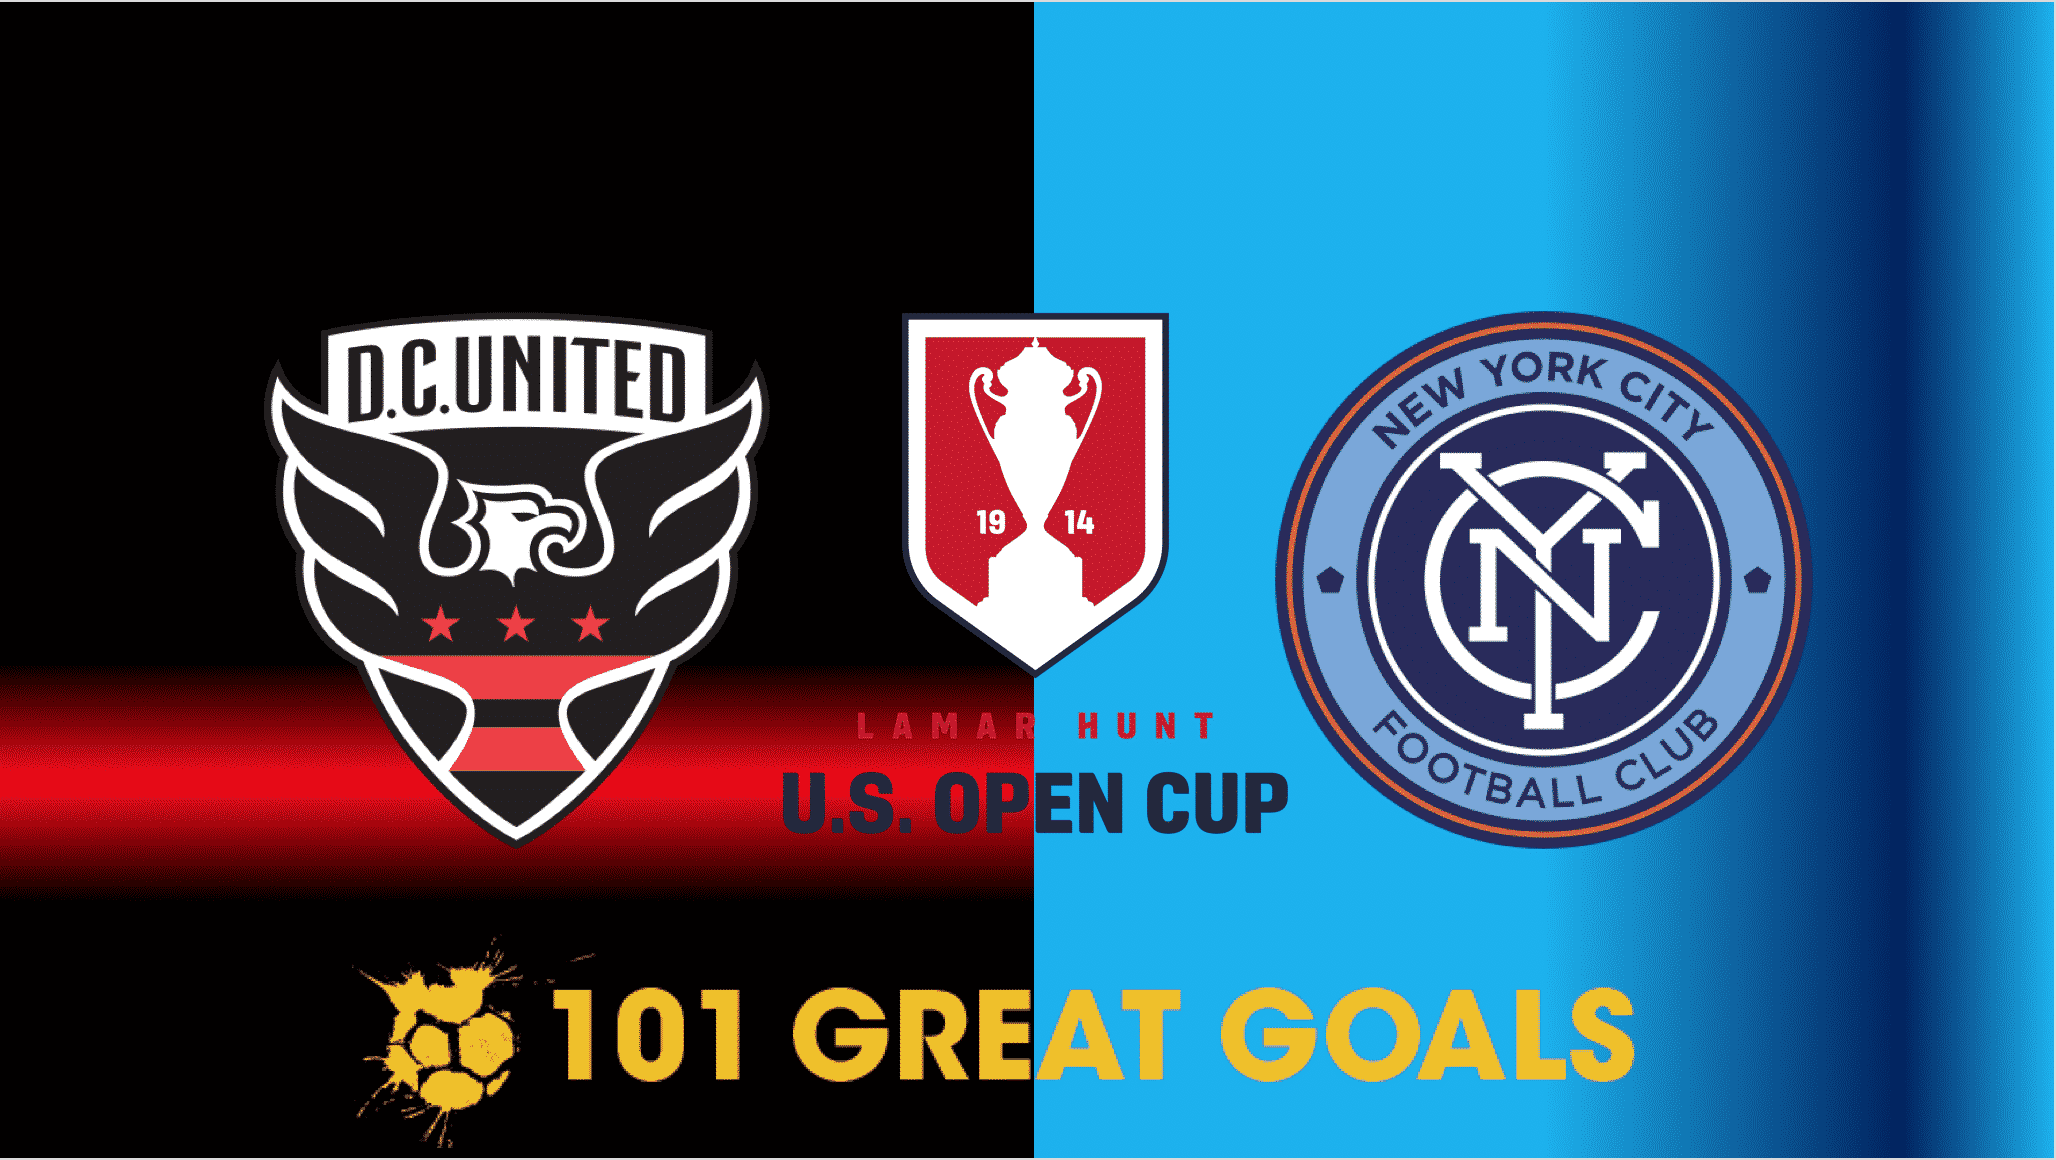 DC United vs New York City live streaming